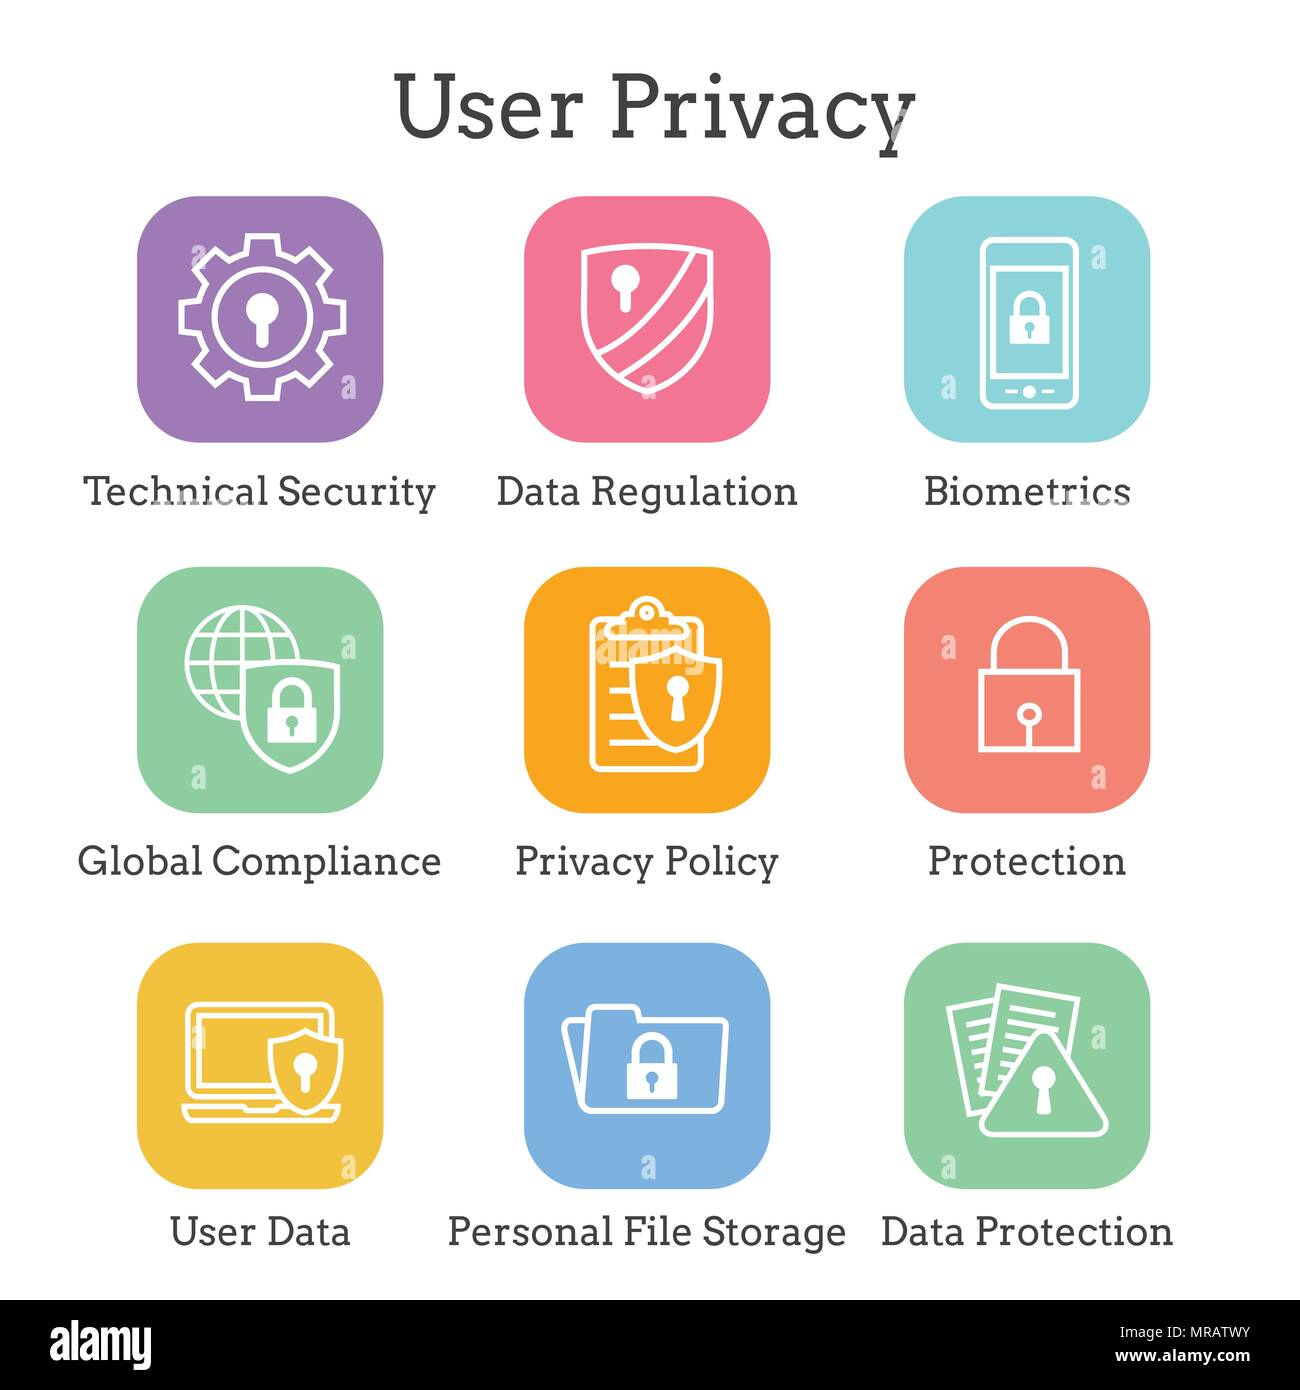 Privacy Policy Concept Stock Photos Data Security Gdpr Icon Set With Locks Padlocks And Shields Image